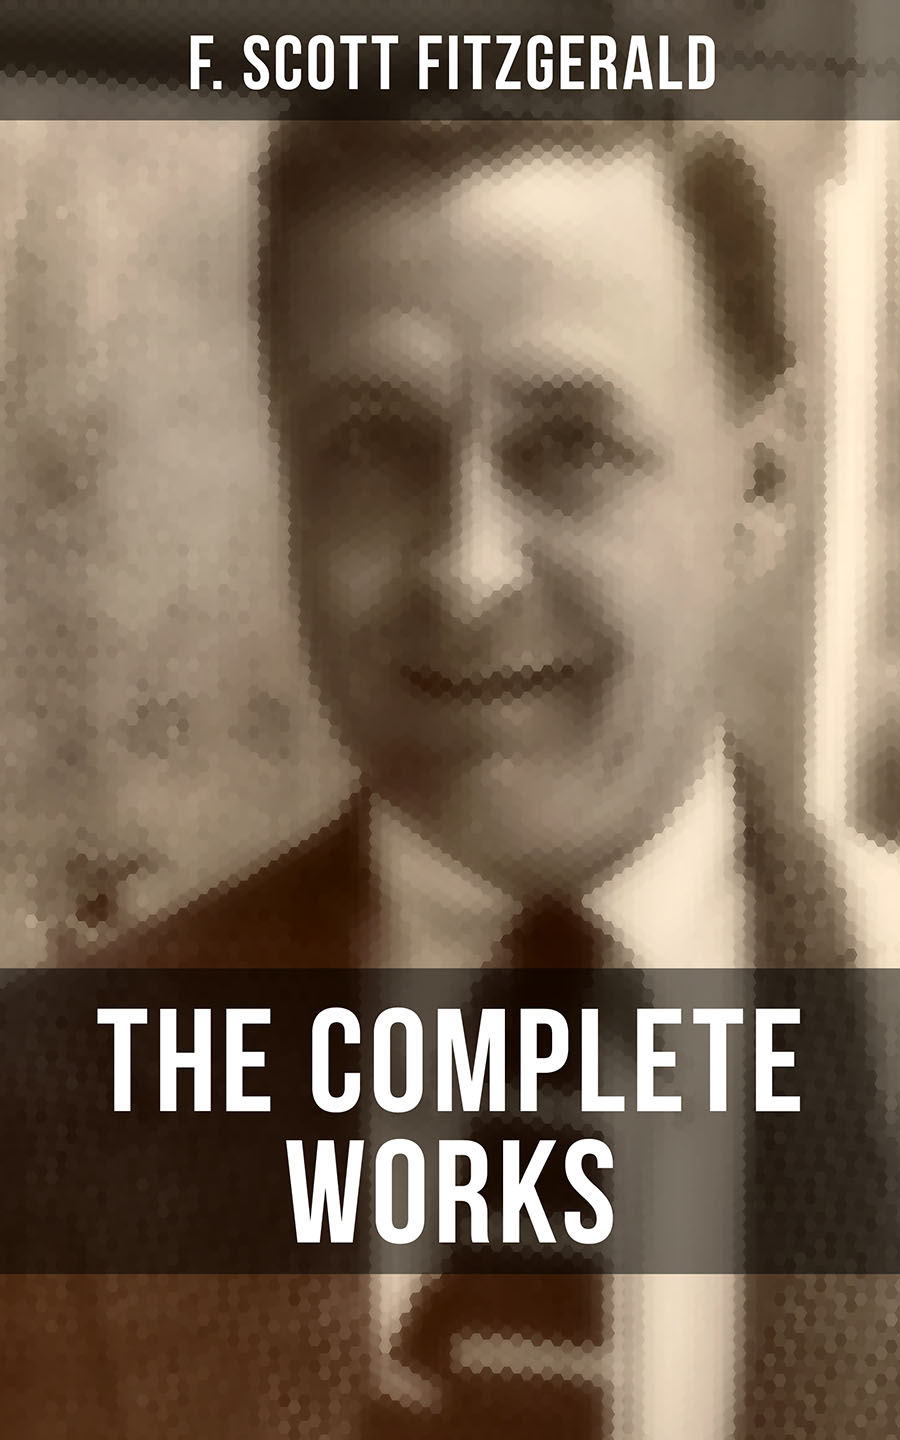 Фото - F. Scott Fitzgerald THE COMPLETE WORKS OF F. SCOTT FITZGERALD cengage learning gale a study guide for f scott fitzgerald s a new leaf